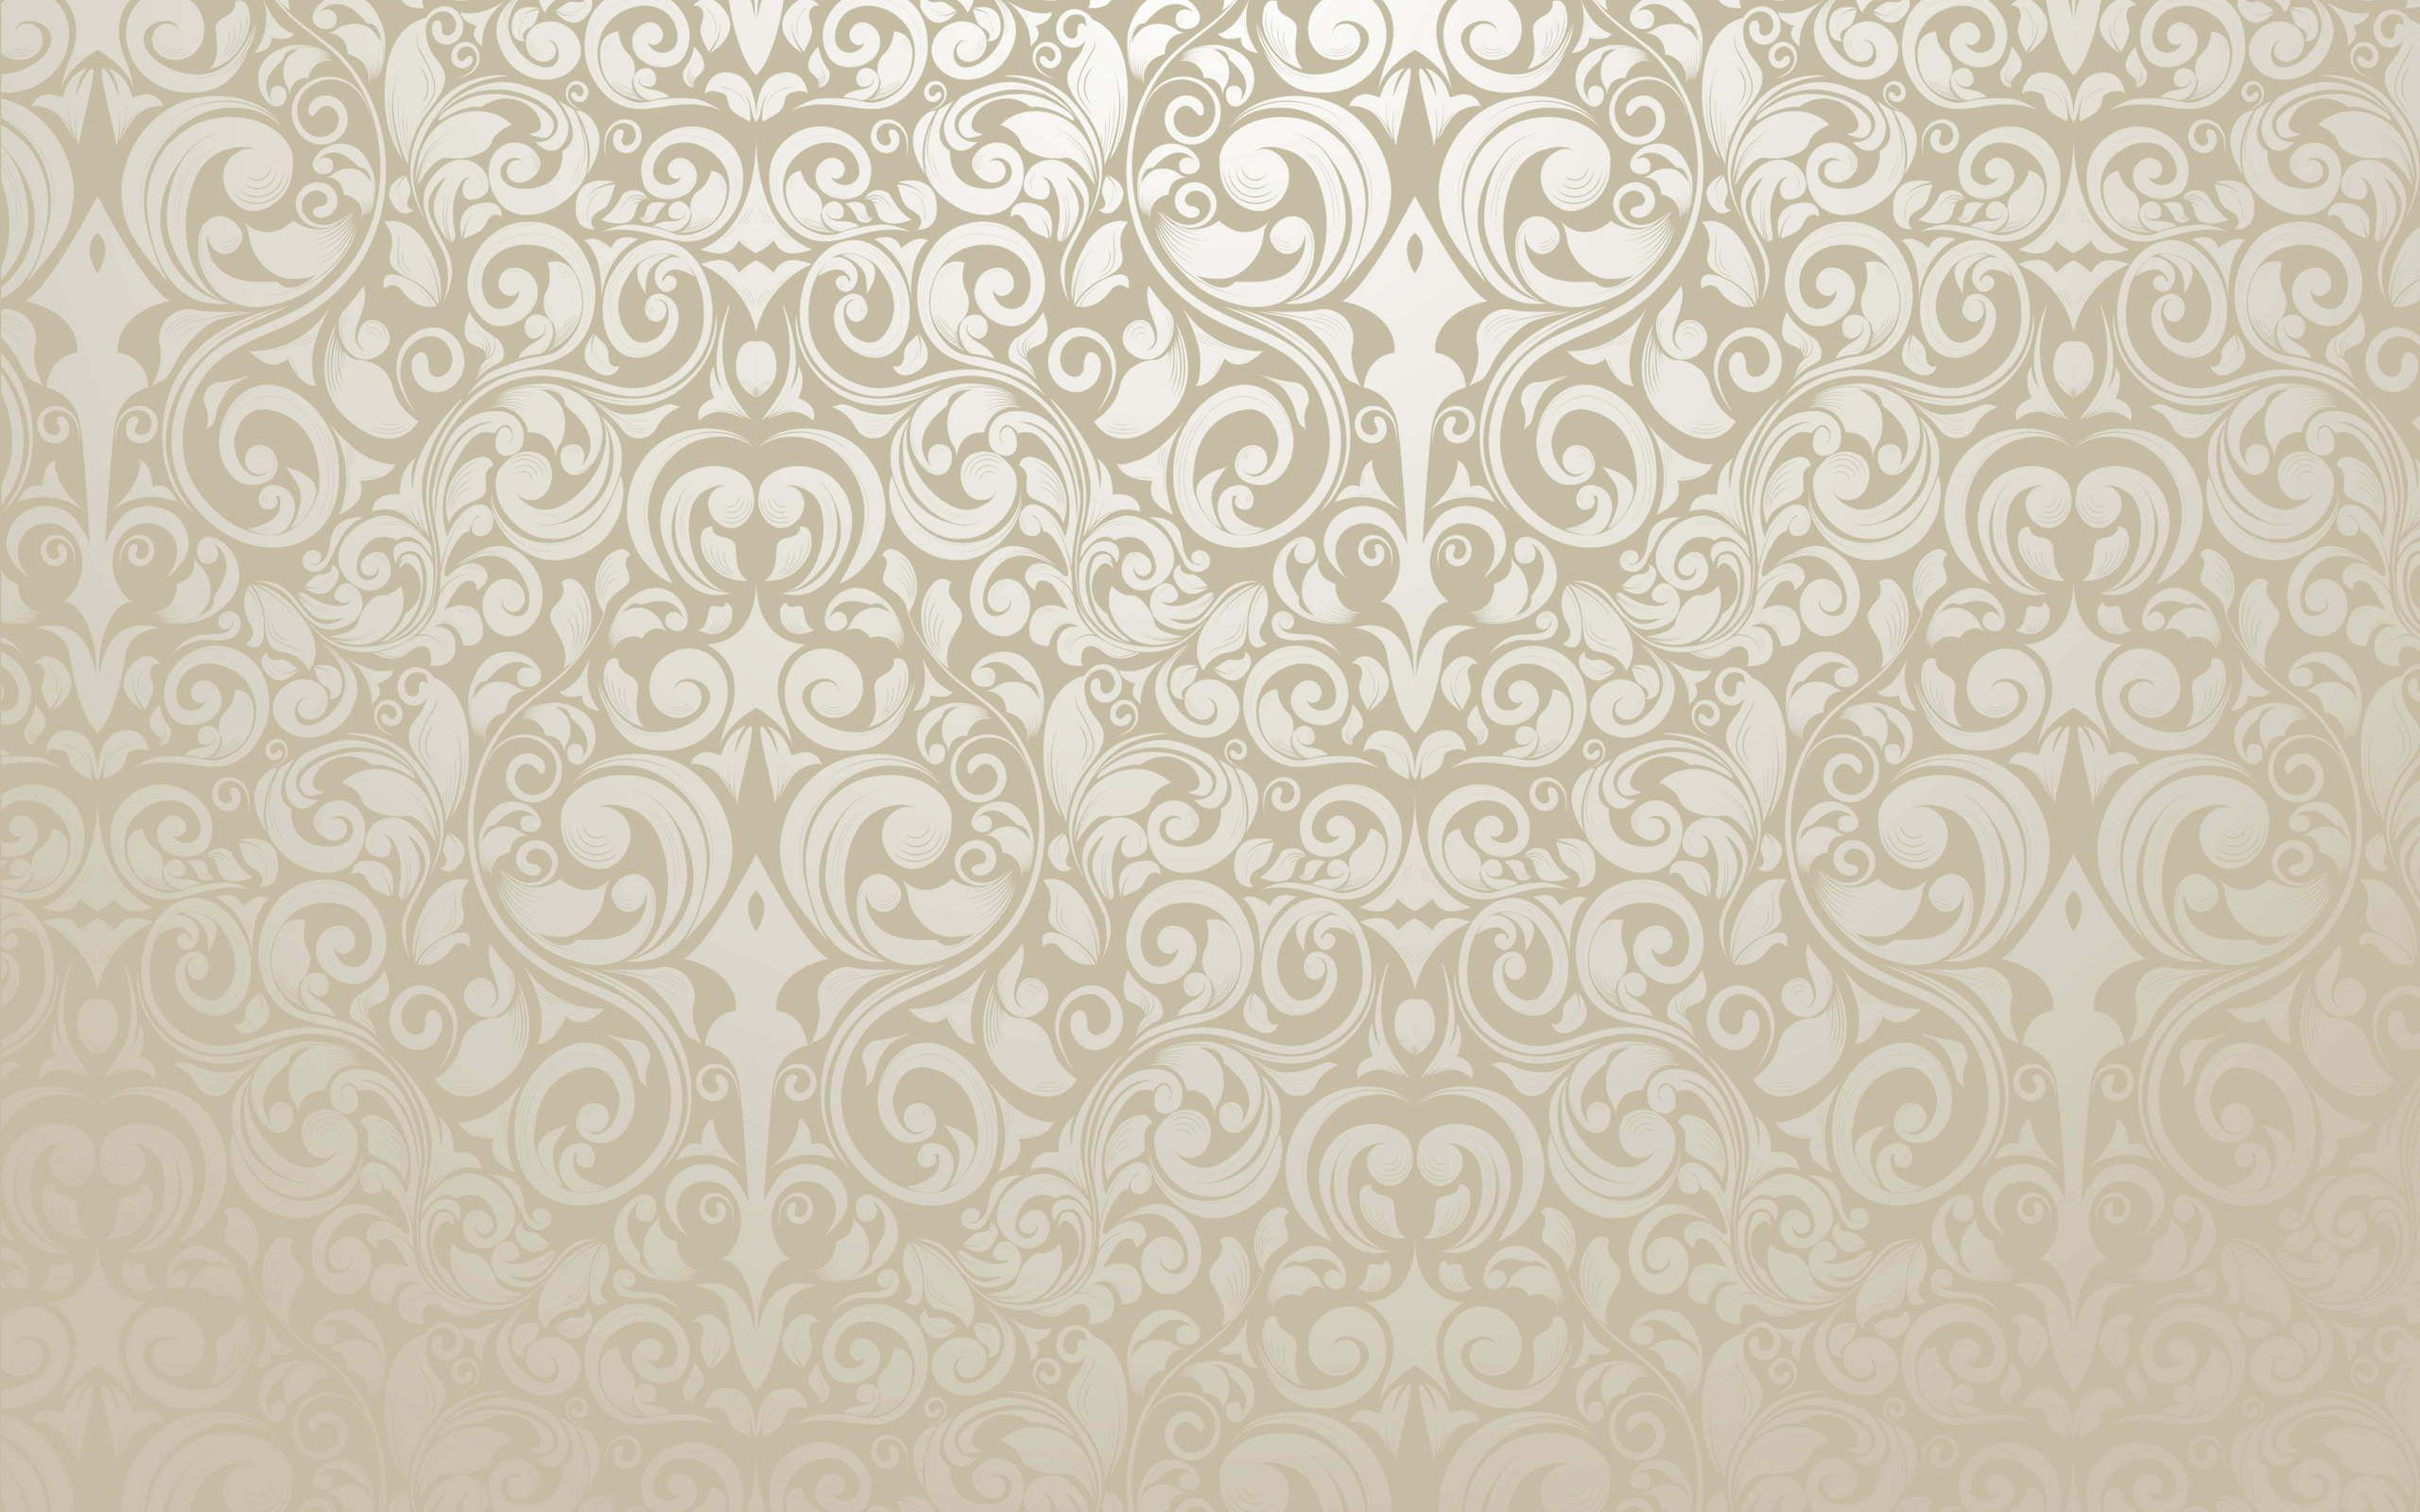 Iphone 5 Wallpaper Floral Vintage Pattern Hd Wallpaper Gold Graphics Pinterest